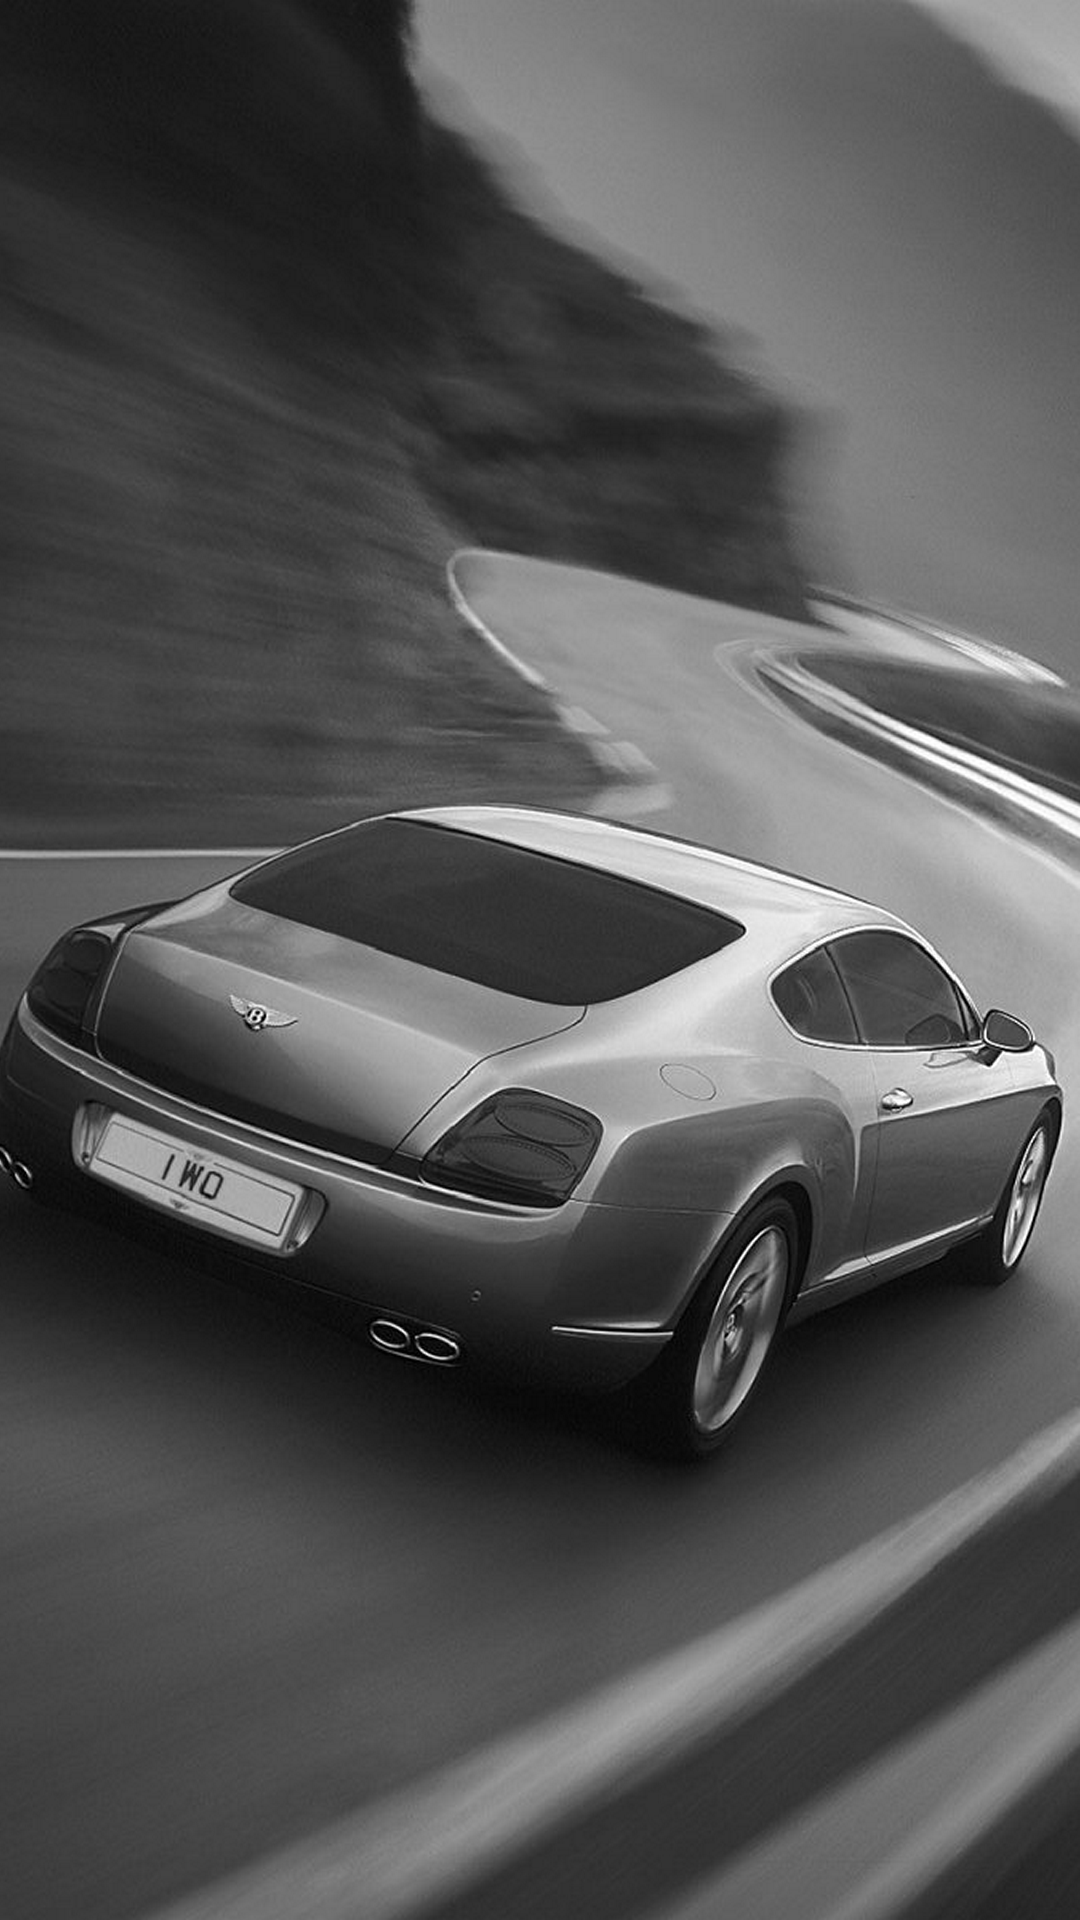 Bentley Continental Gt Black And White Android And Iphone Wallpaper